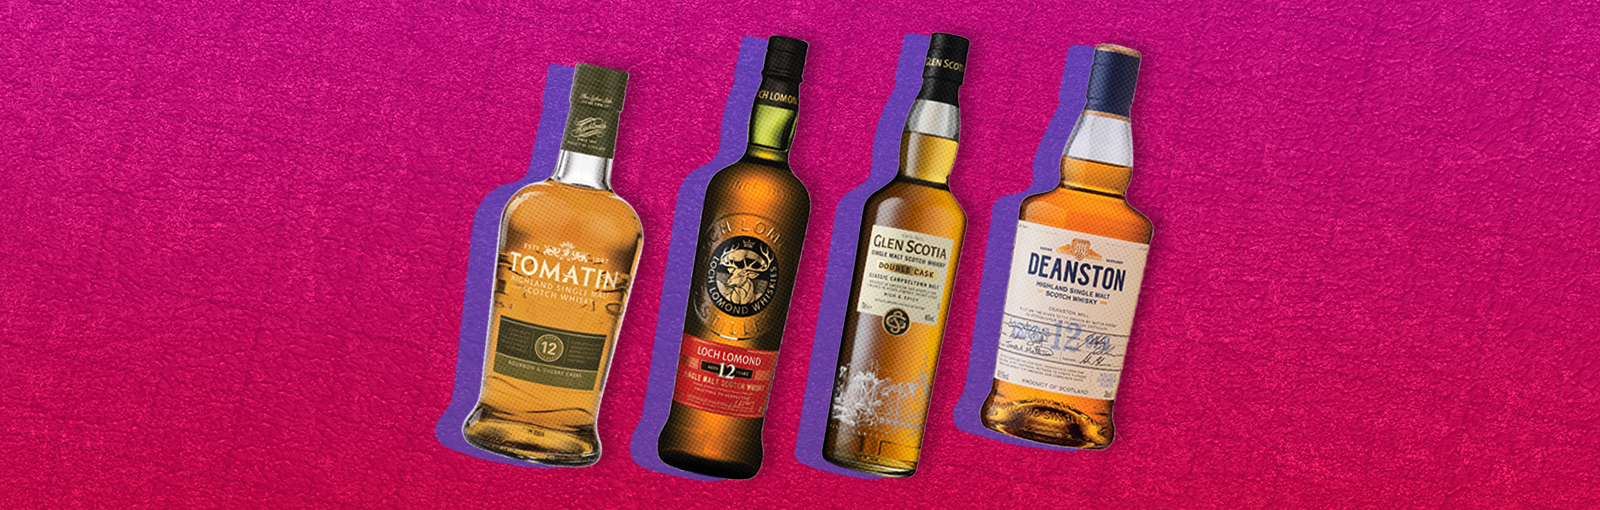 Underrated, High-Value Single Malt Scotches In The $40-60 Range